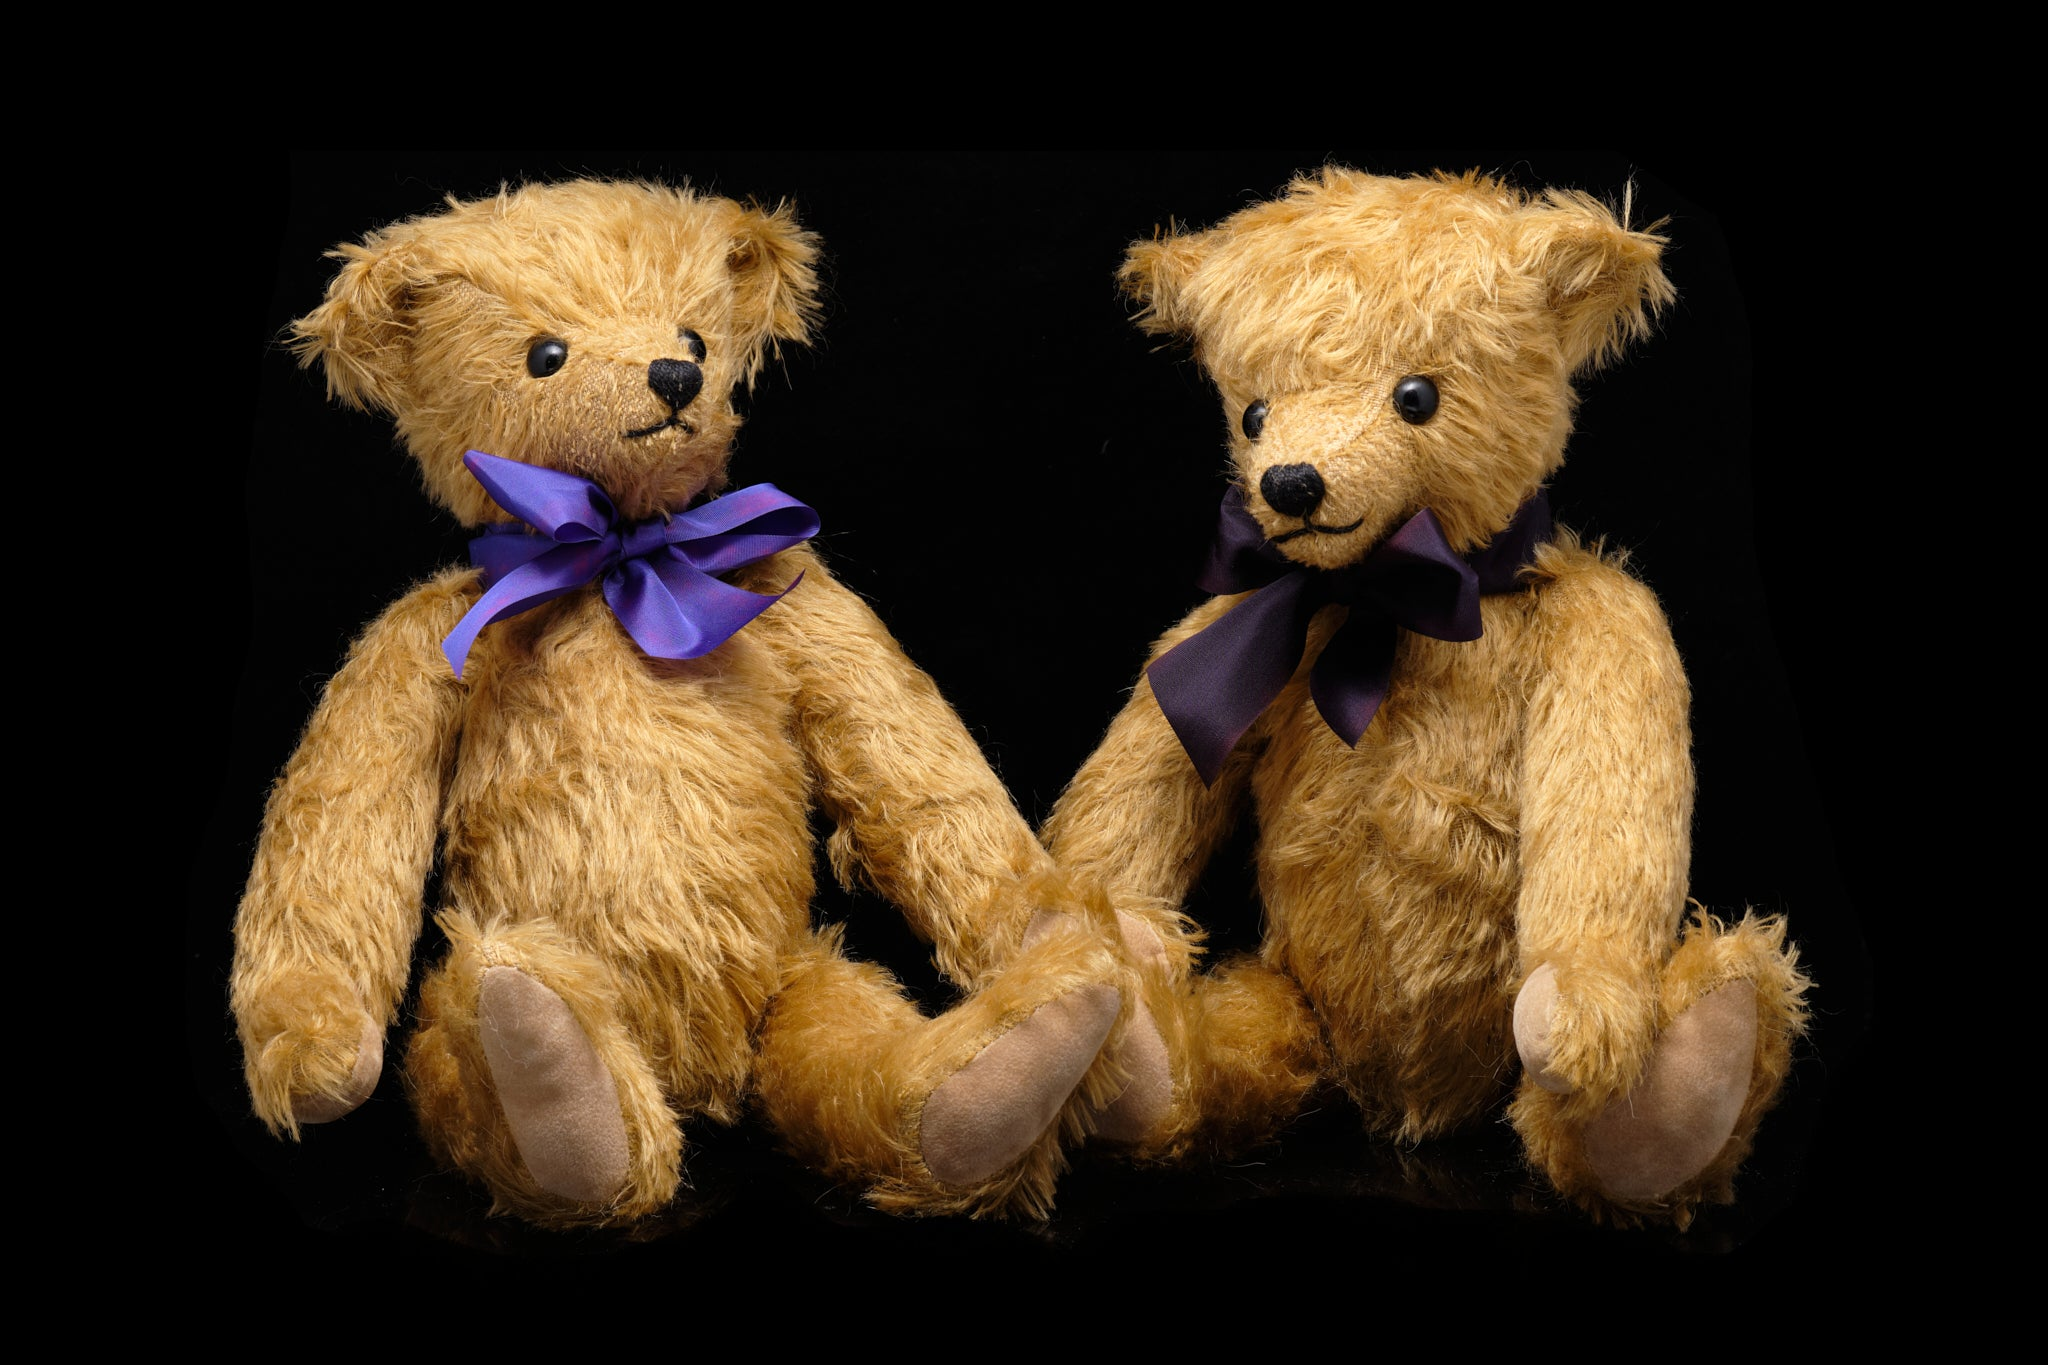 Past Times Limited Edition Teddy Bears.